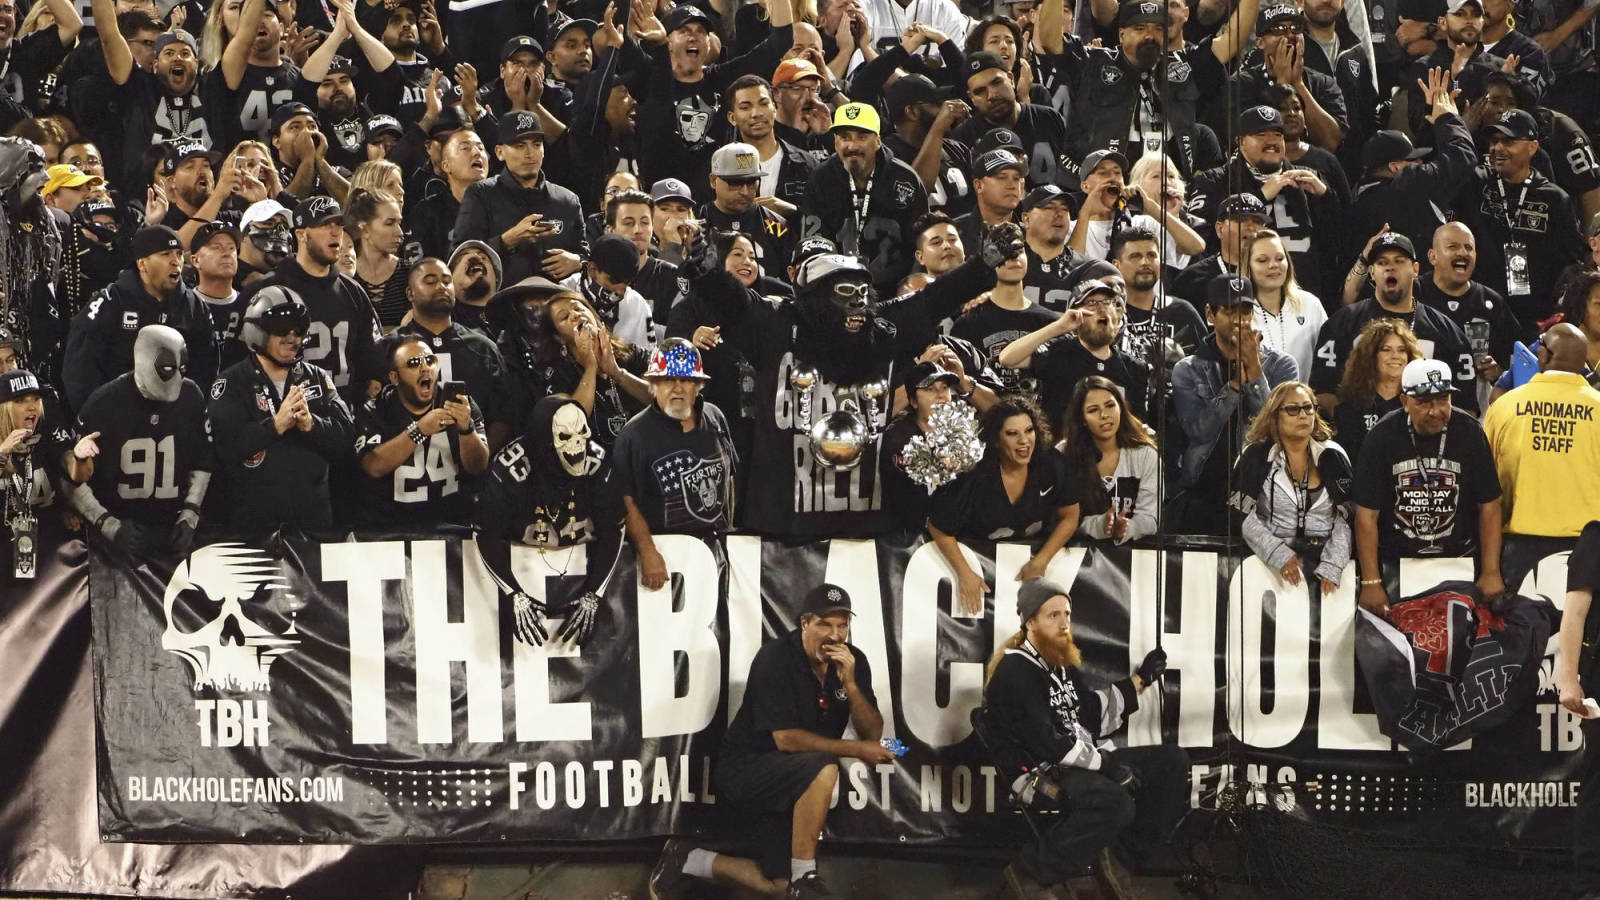 Raiders fans appear to be recreating Black Hole...